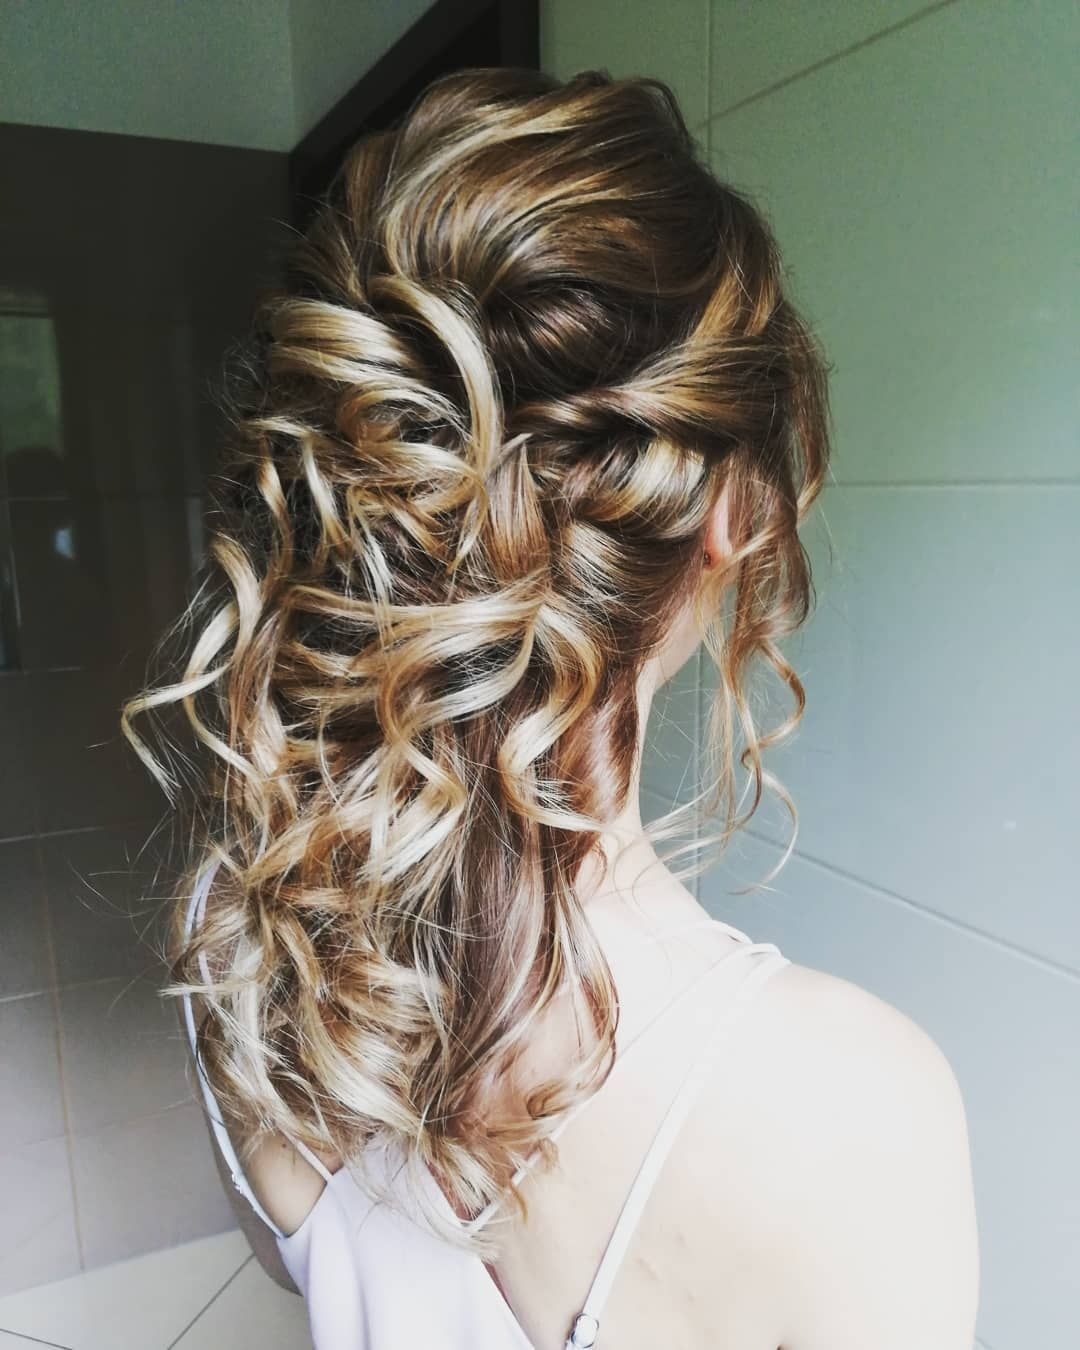 Prom Hairstyles For Women 2019 Hairstyles Women Hair Styles